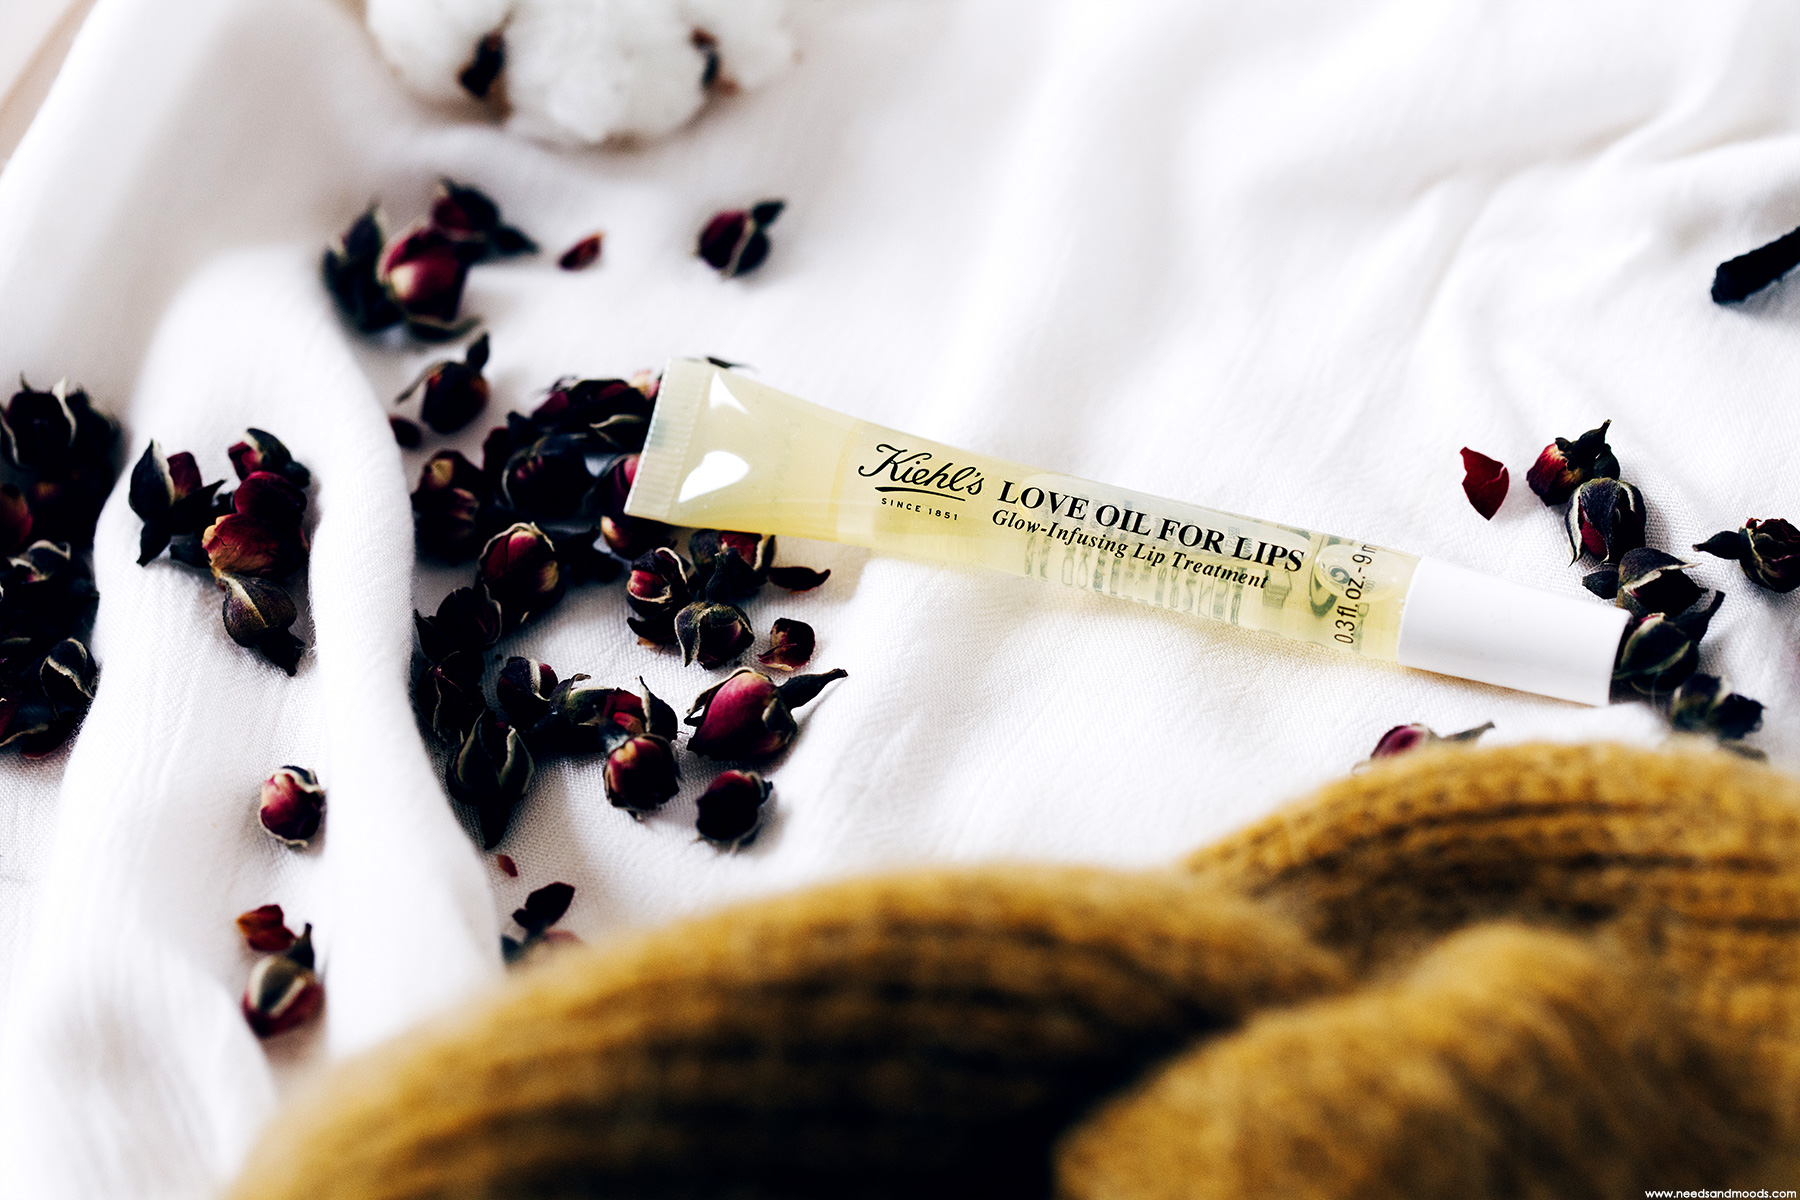 kiehls huile levres love oil for lips